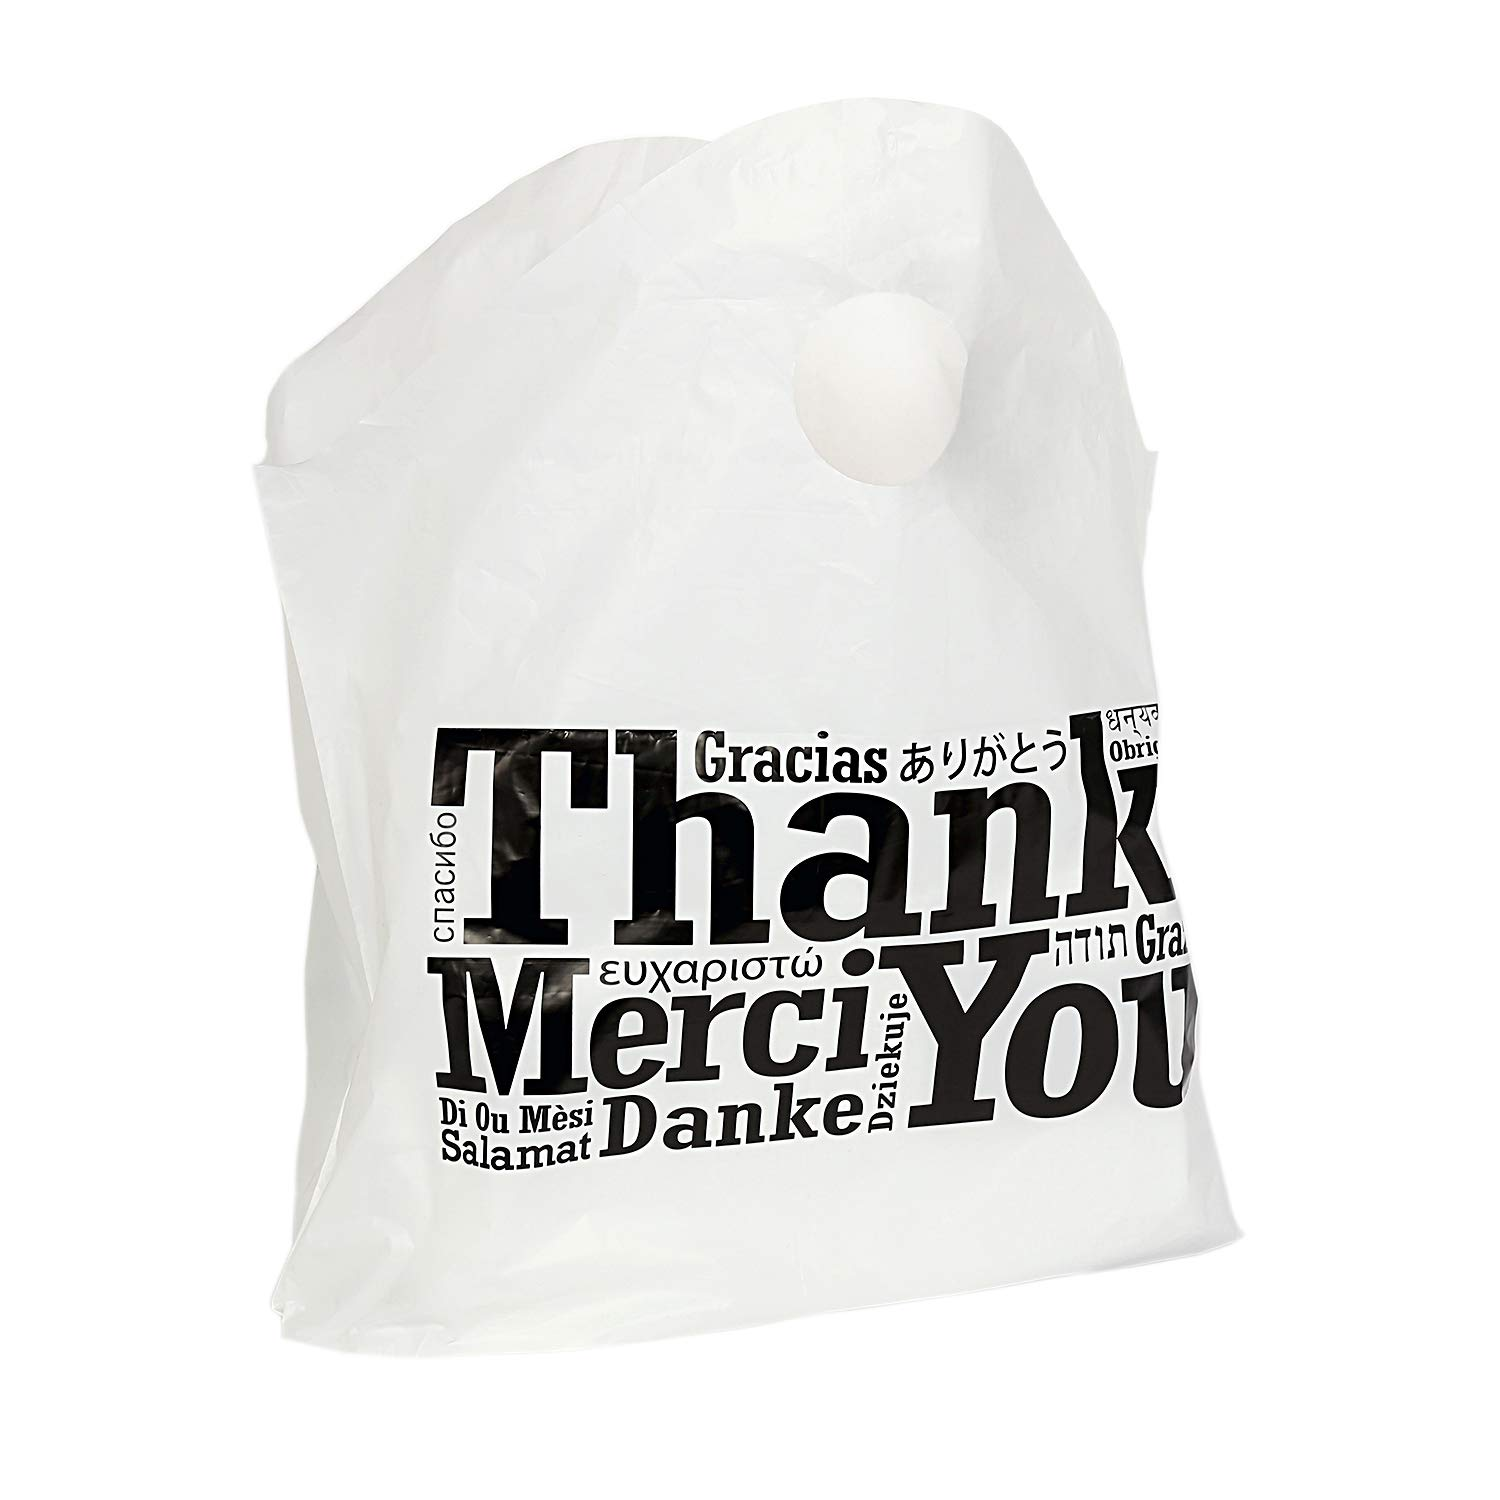 Royal Recyclable Plastic Shopping Bags with Wave Top Handles, 19'' x 18'' x 9.5'', Multilingual''Thank You'' Design, Case of 500